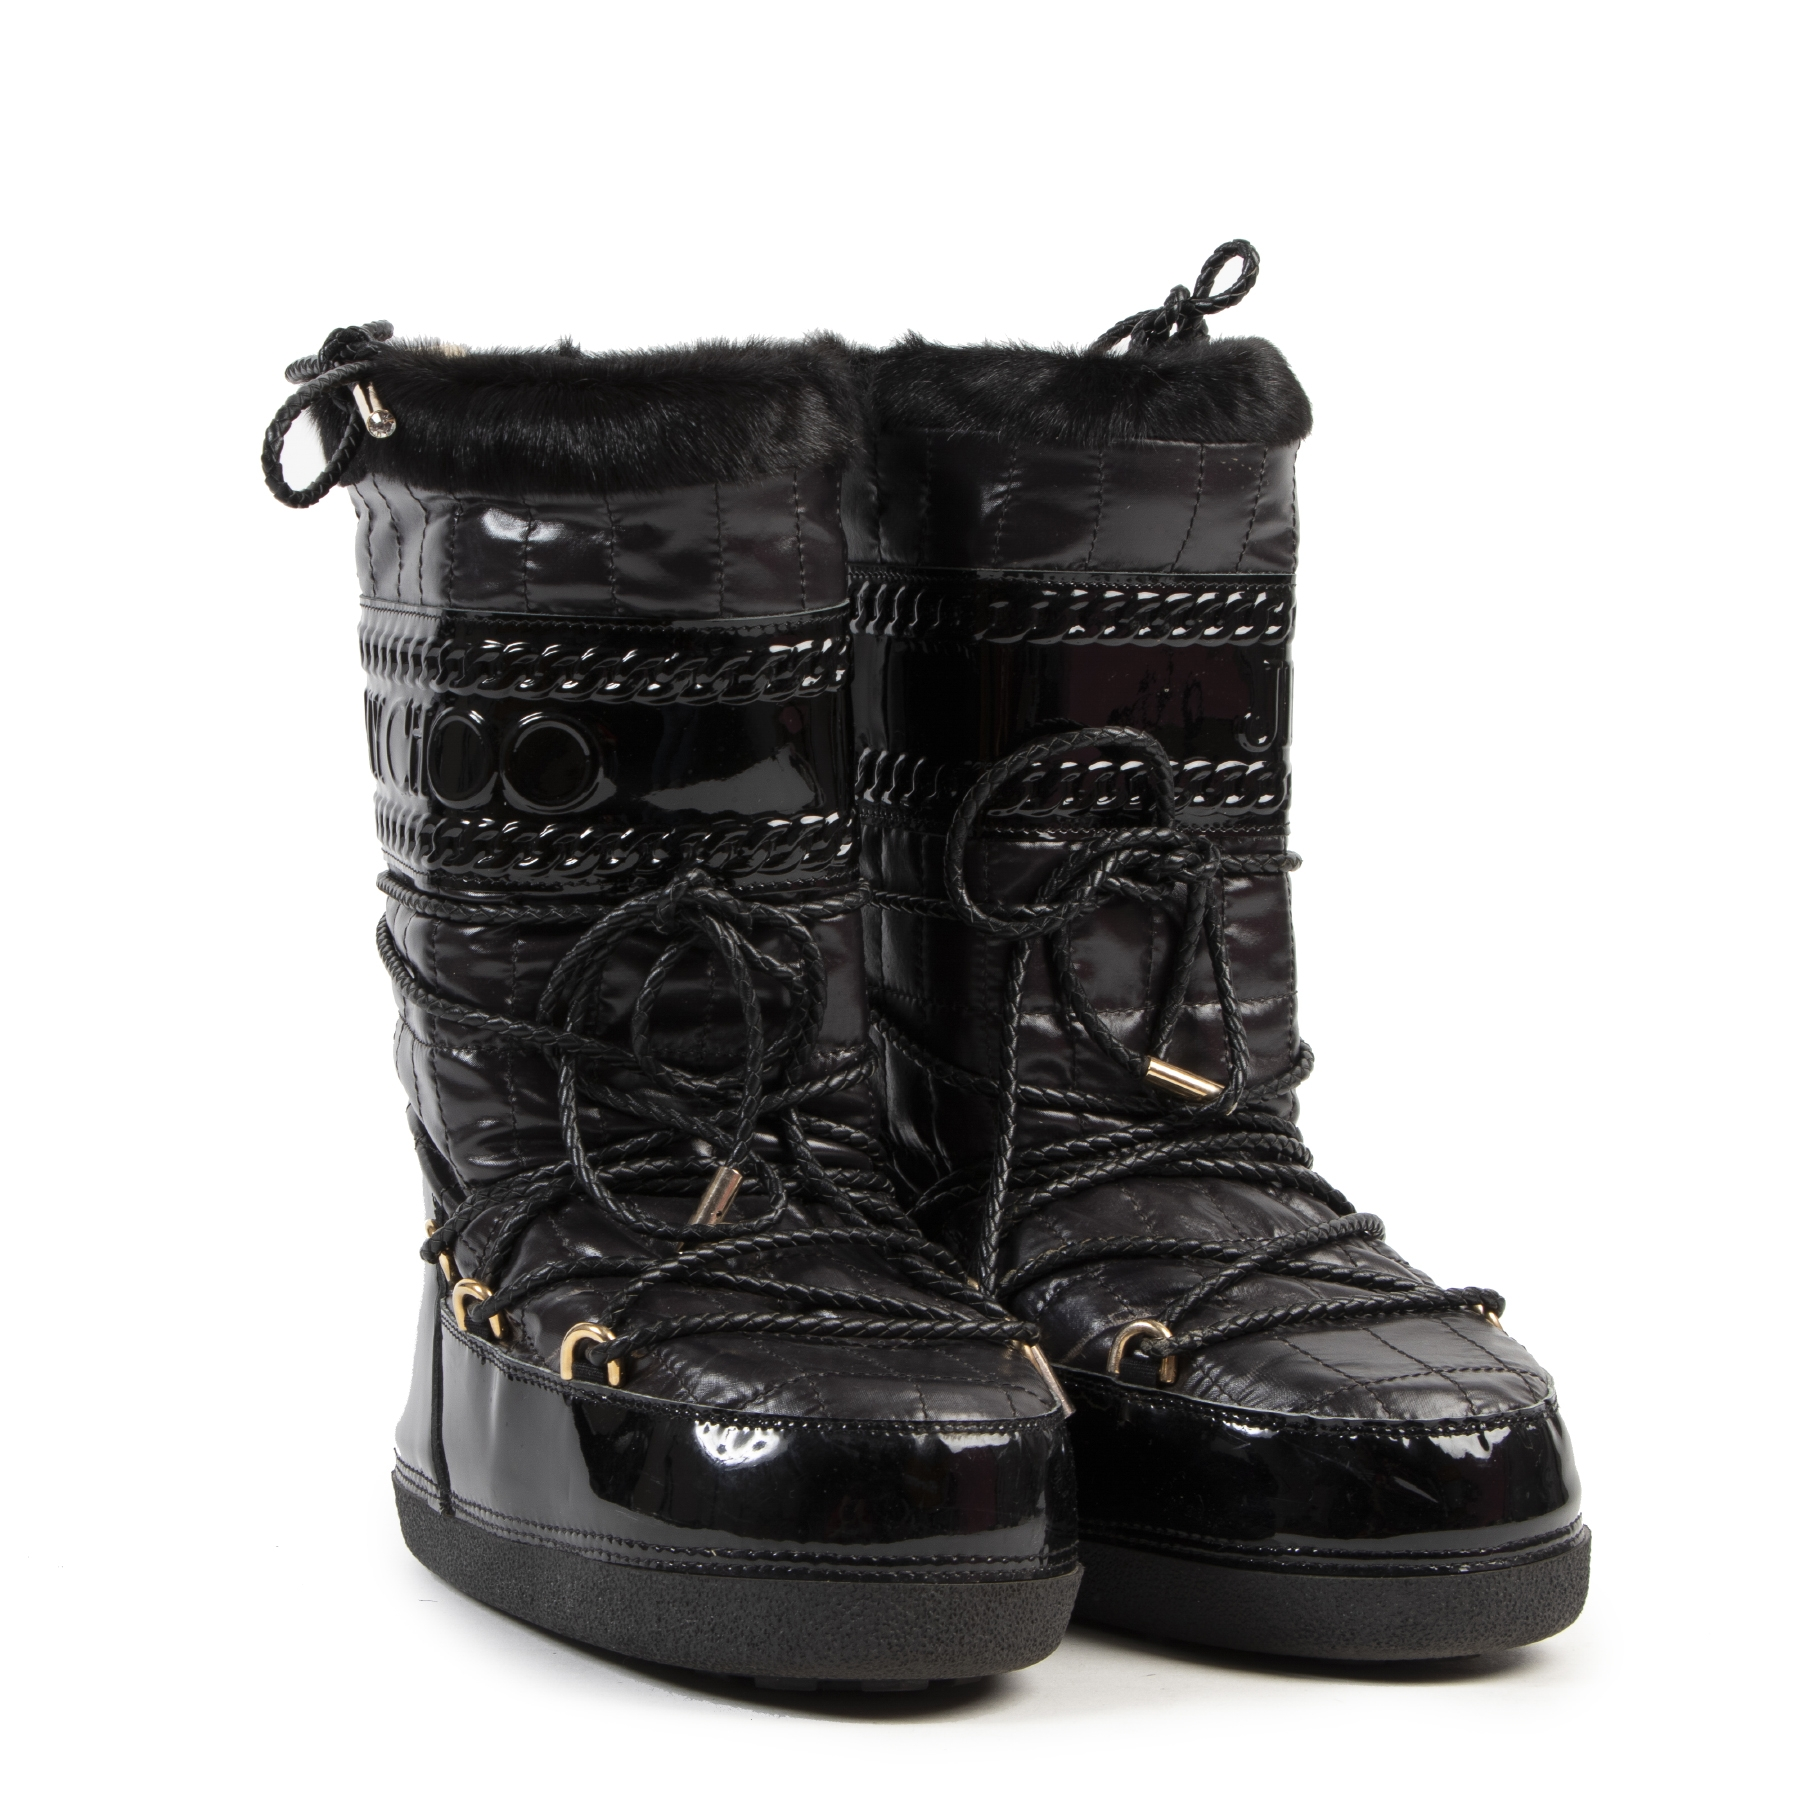 Jimmy Choo Black Patent Moon Boot - Size 38-40